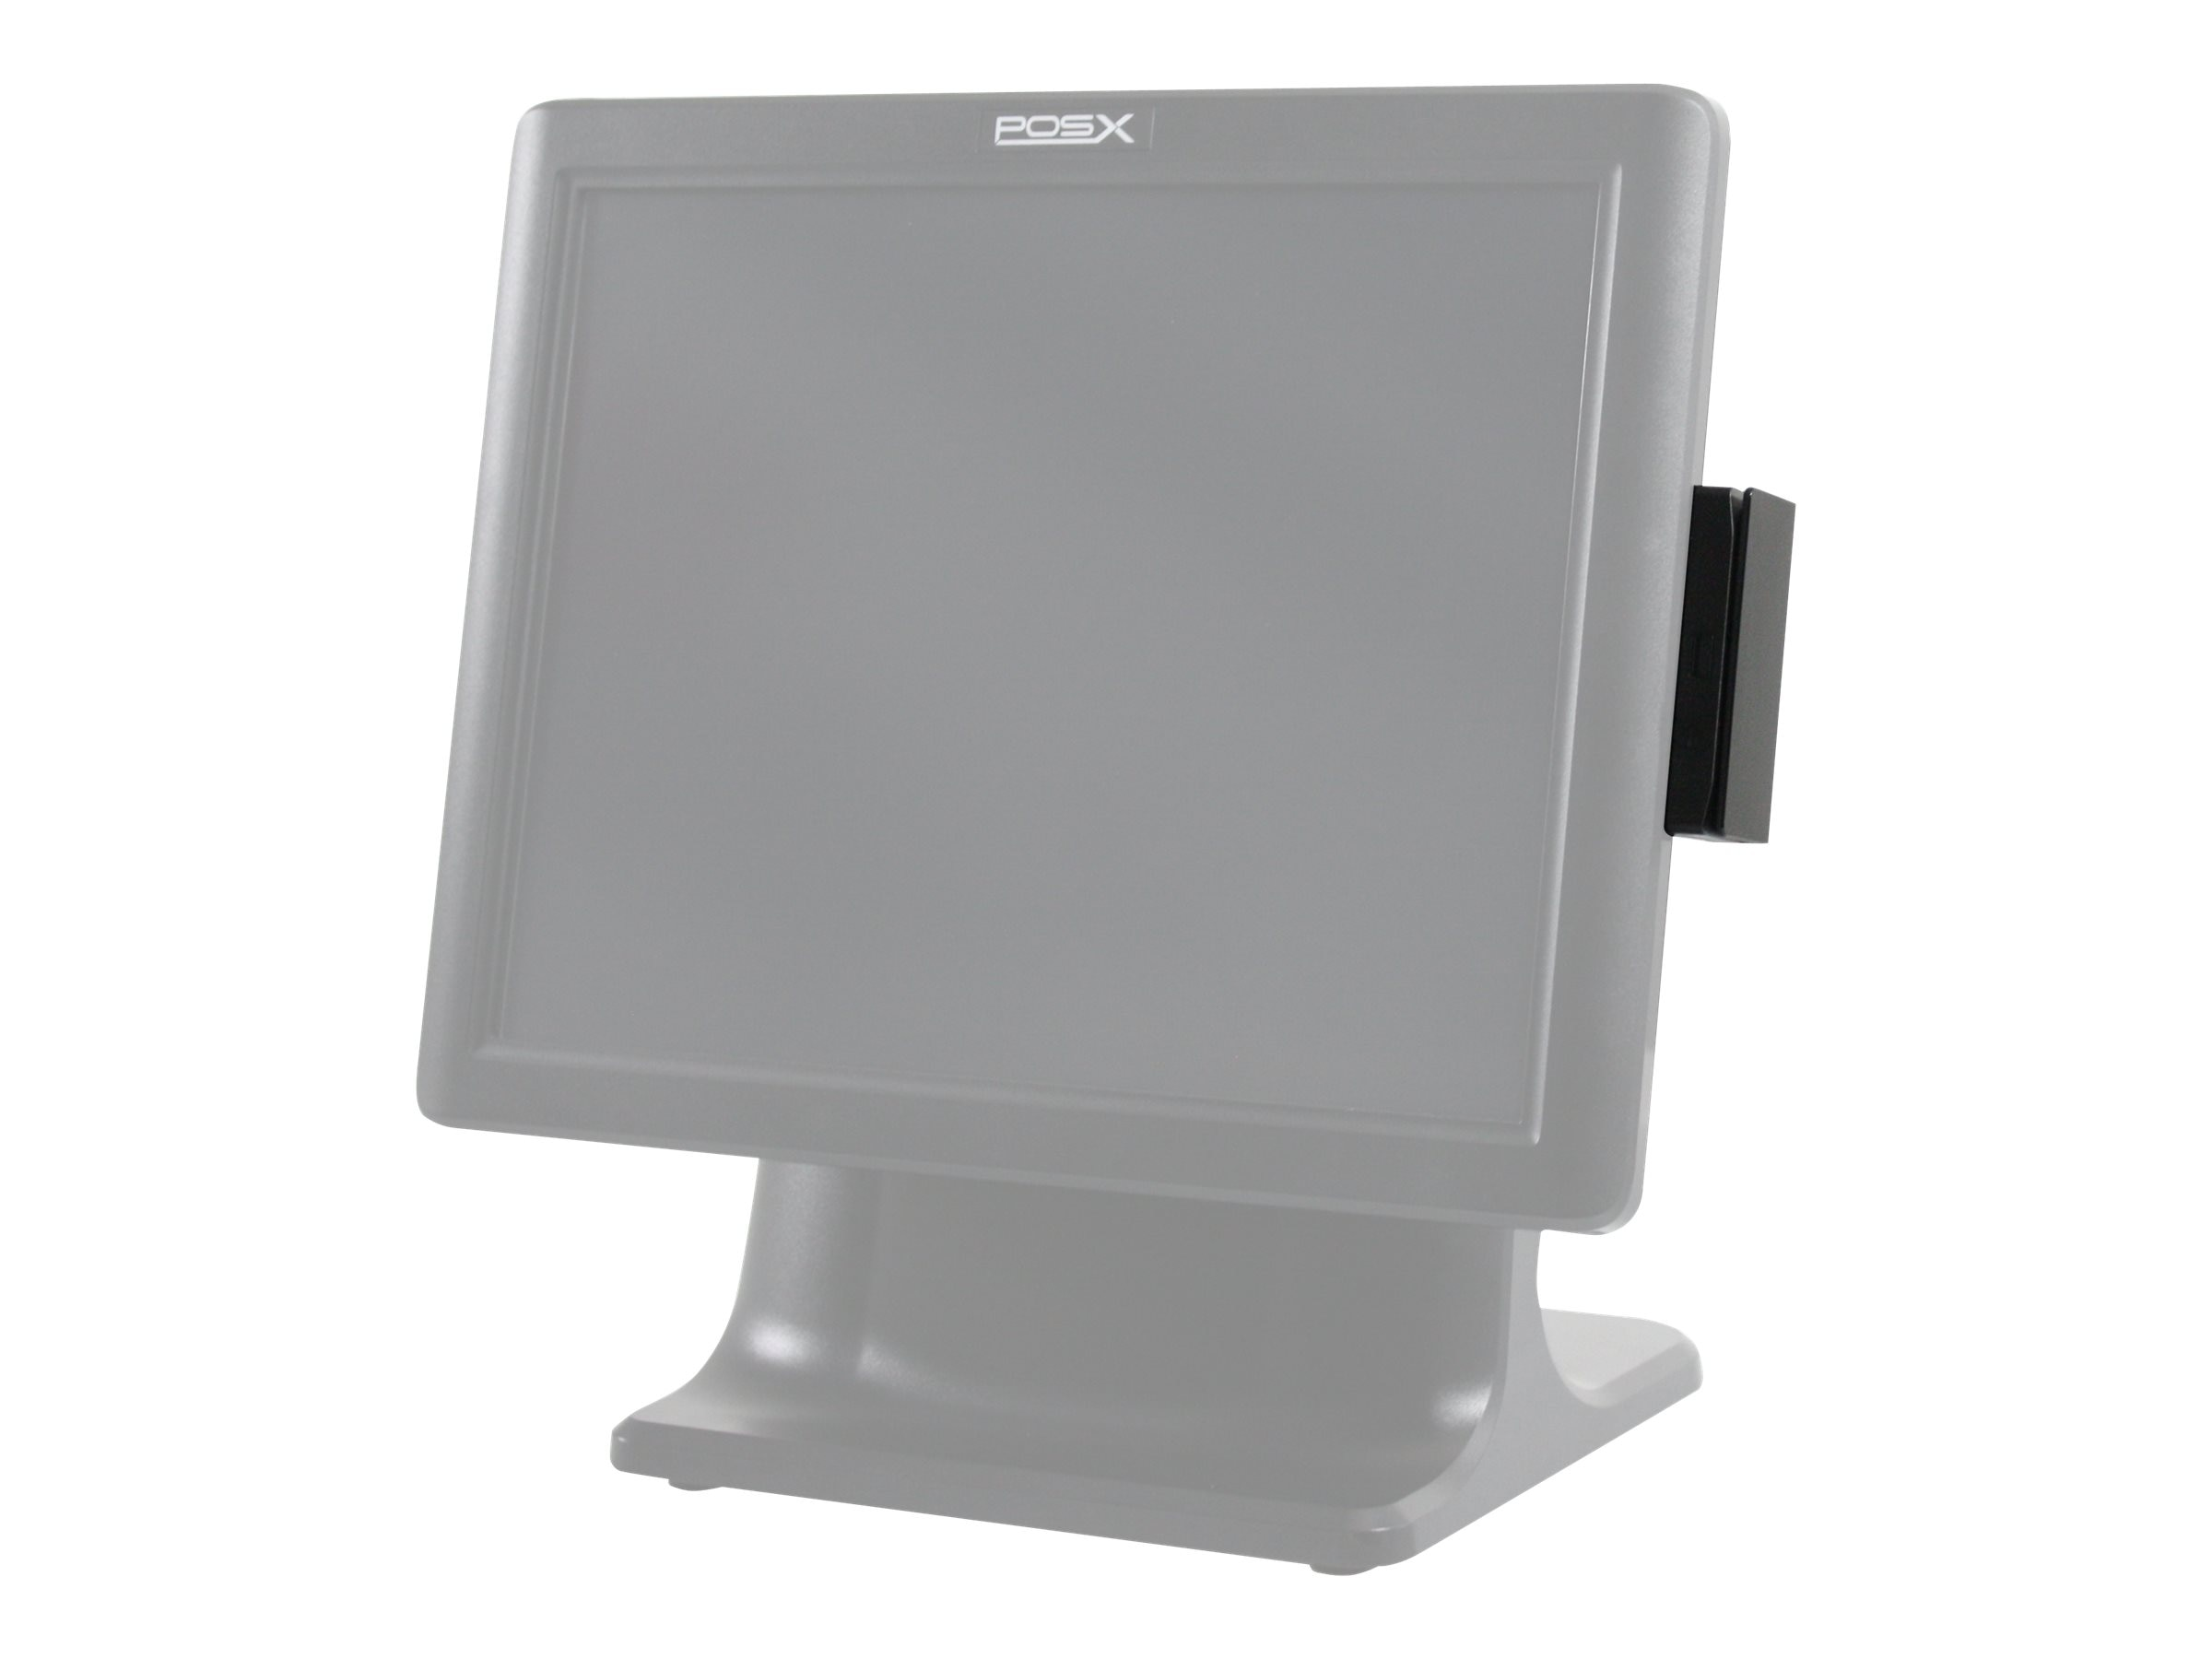 Pos-X ION-MR3 Image 1